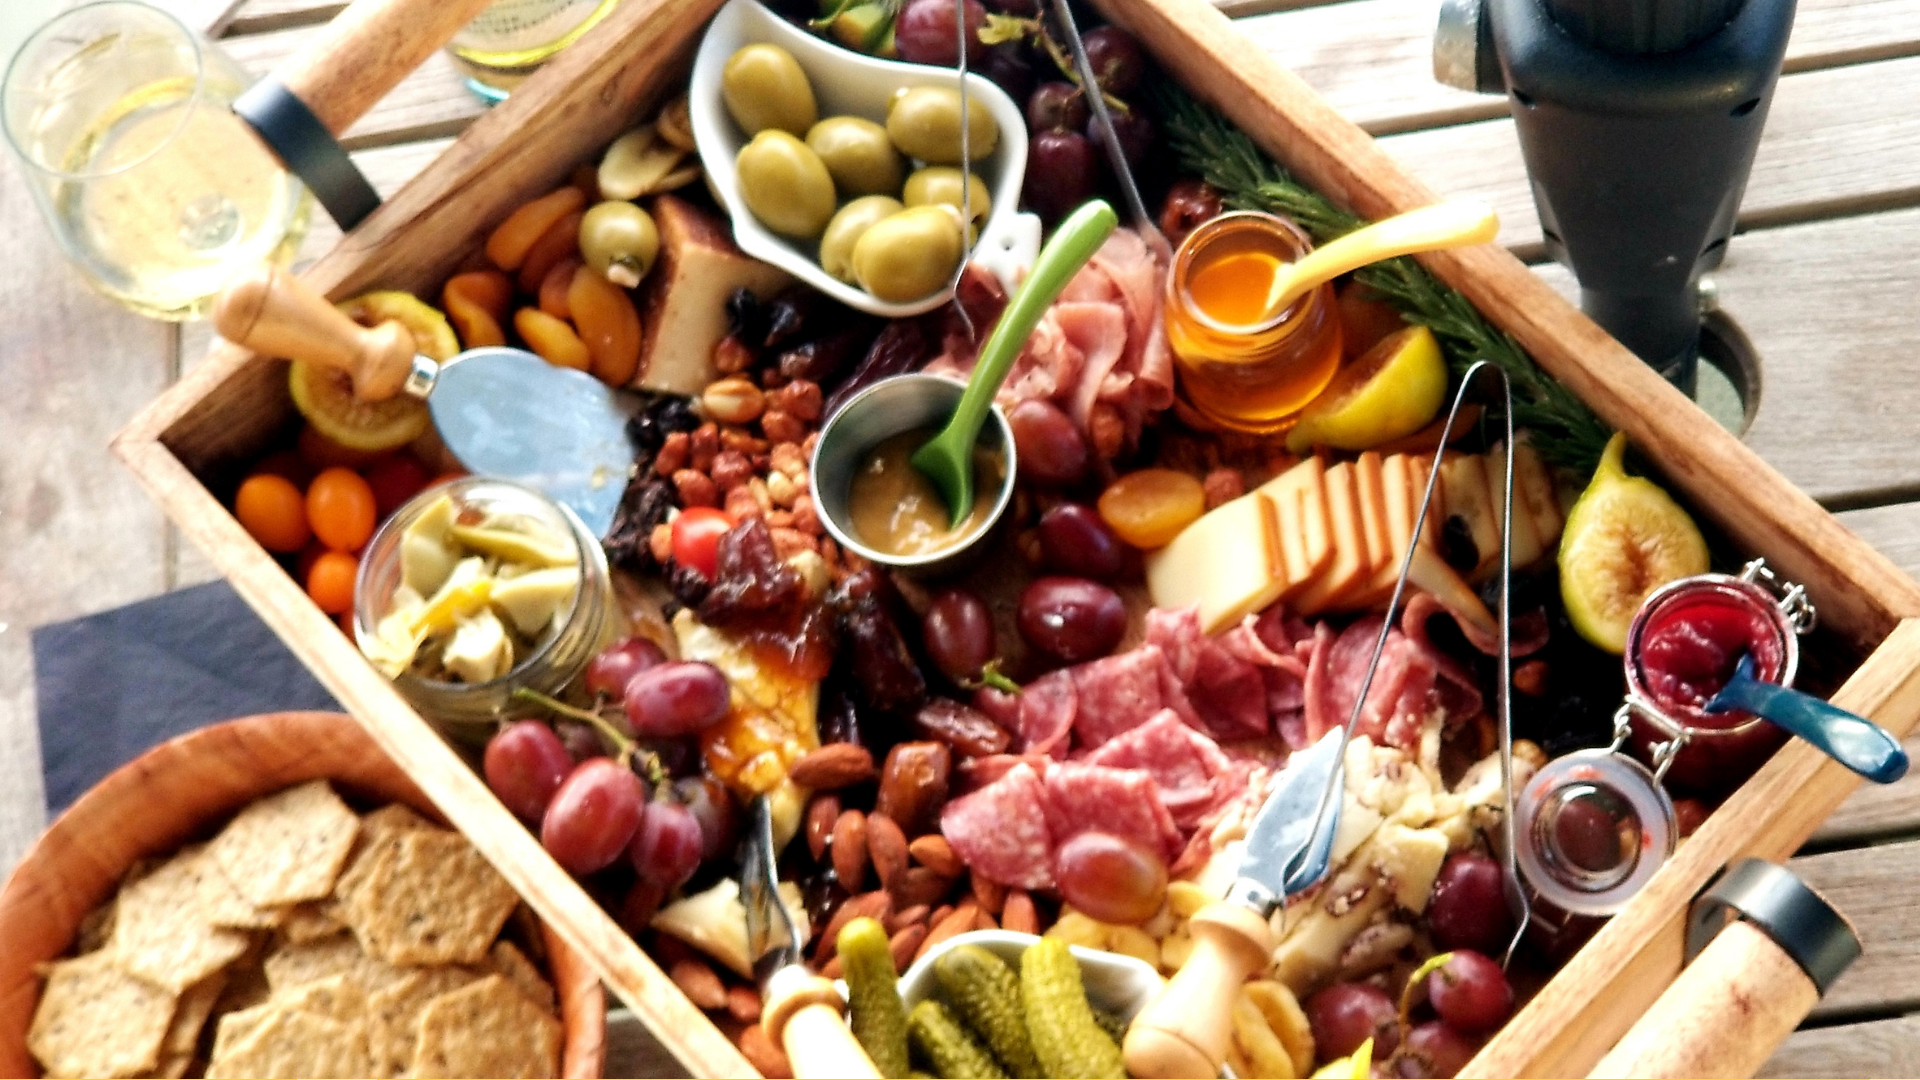 CheeseBoardFBEventPic.png